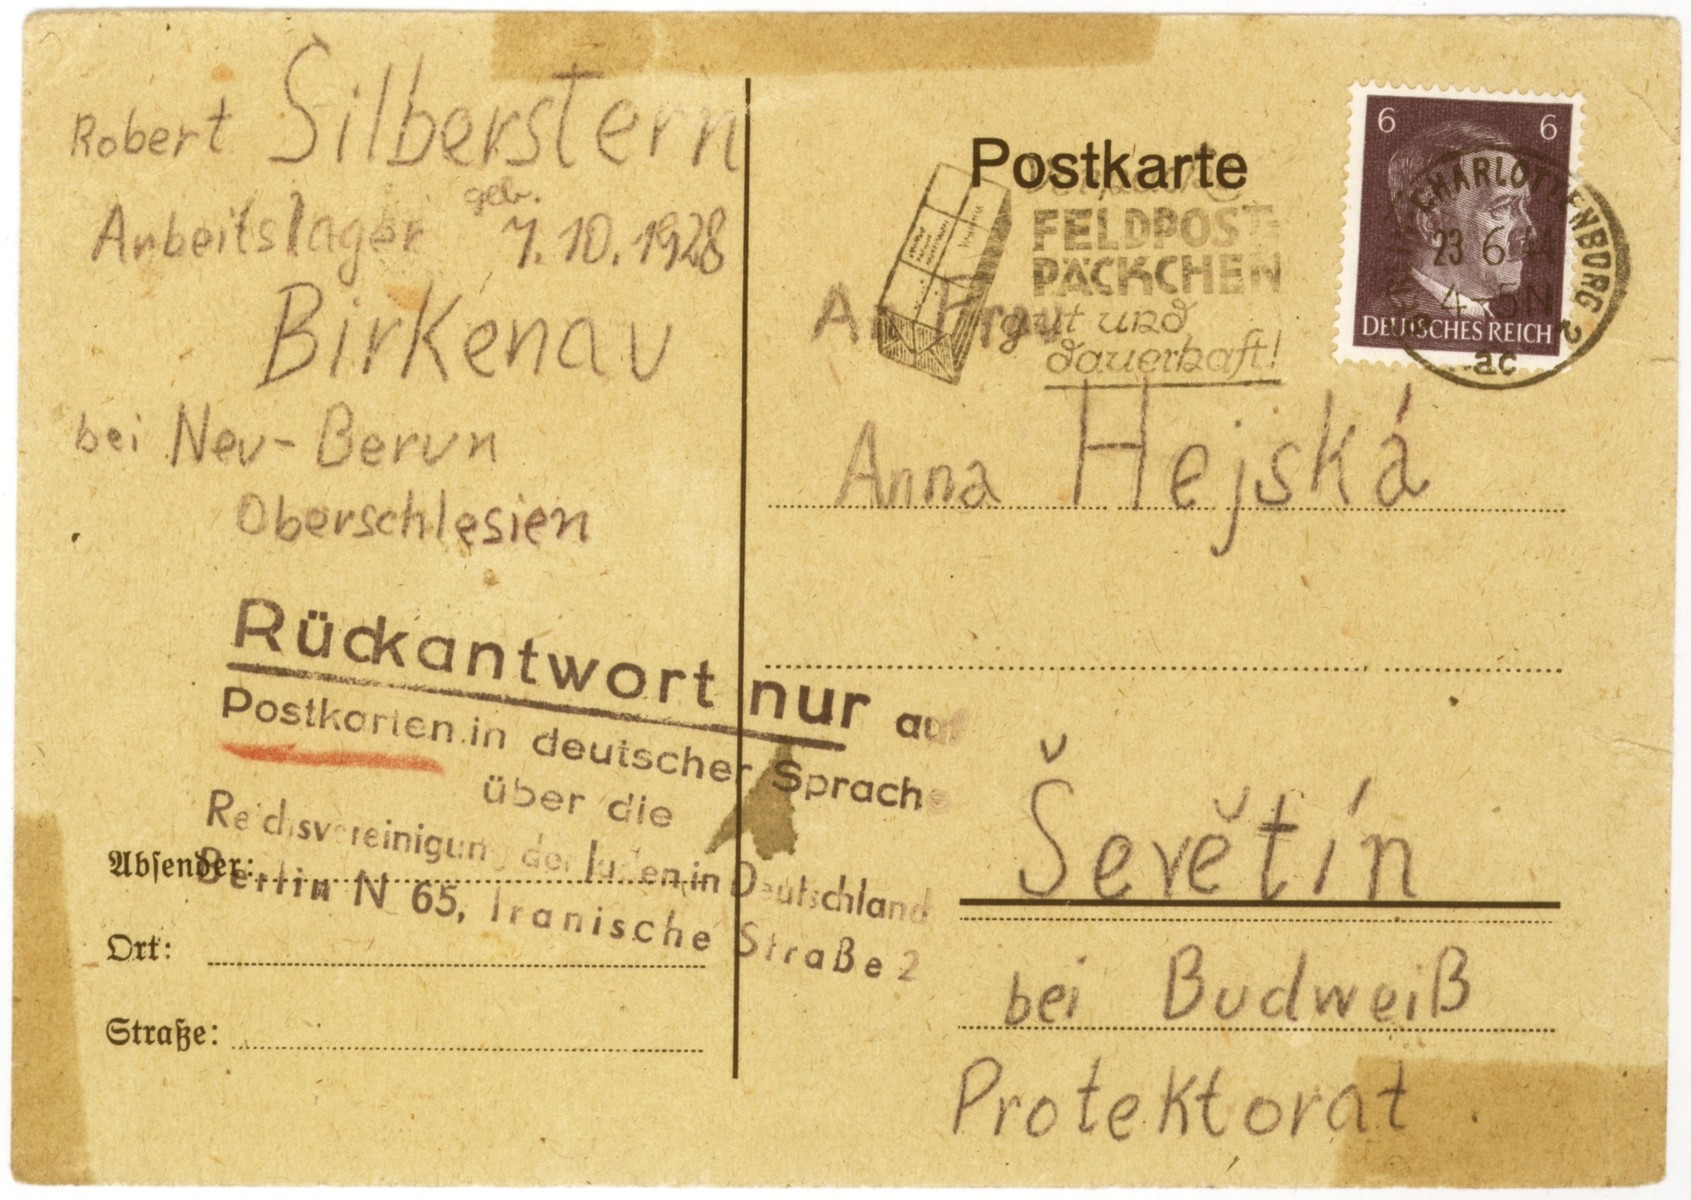 A postcard sent to Anna (Goldstein) Hajsky, by her nephew, Robert Silberstern, from the Auschwitz-Birkenau concentration camp.    Robert writes that he is healthy and working hard.  He hopes that his aunt has not forgotten him.  By this time, however, Anna, had already been deported to the Theresienstadt concentration camp.  The postcard was received by Anna's sons, Marcel and Jan, who escaped deportation because their father, Cenek Hajsky, was not Jewish.